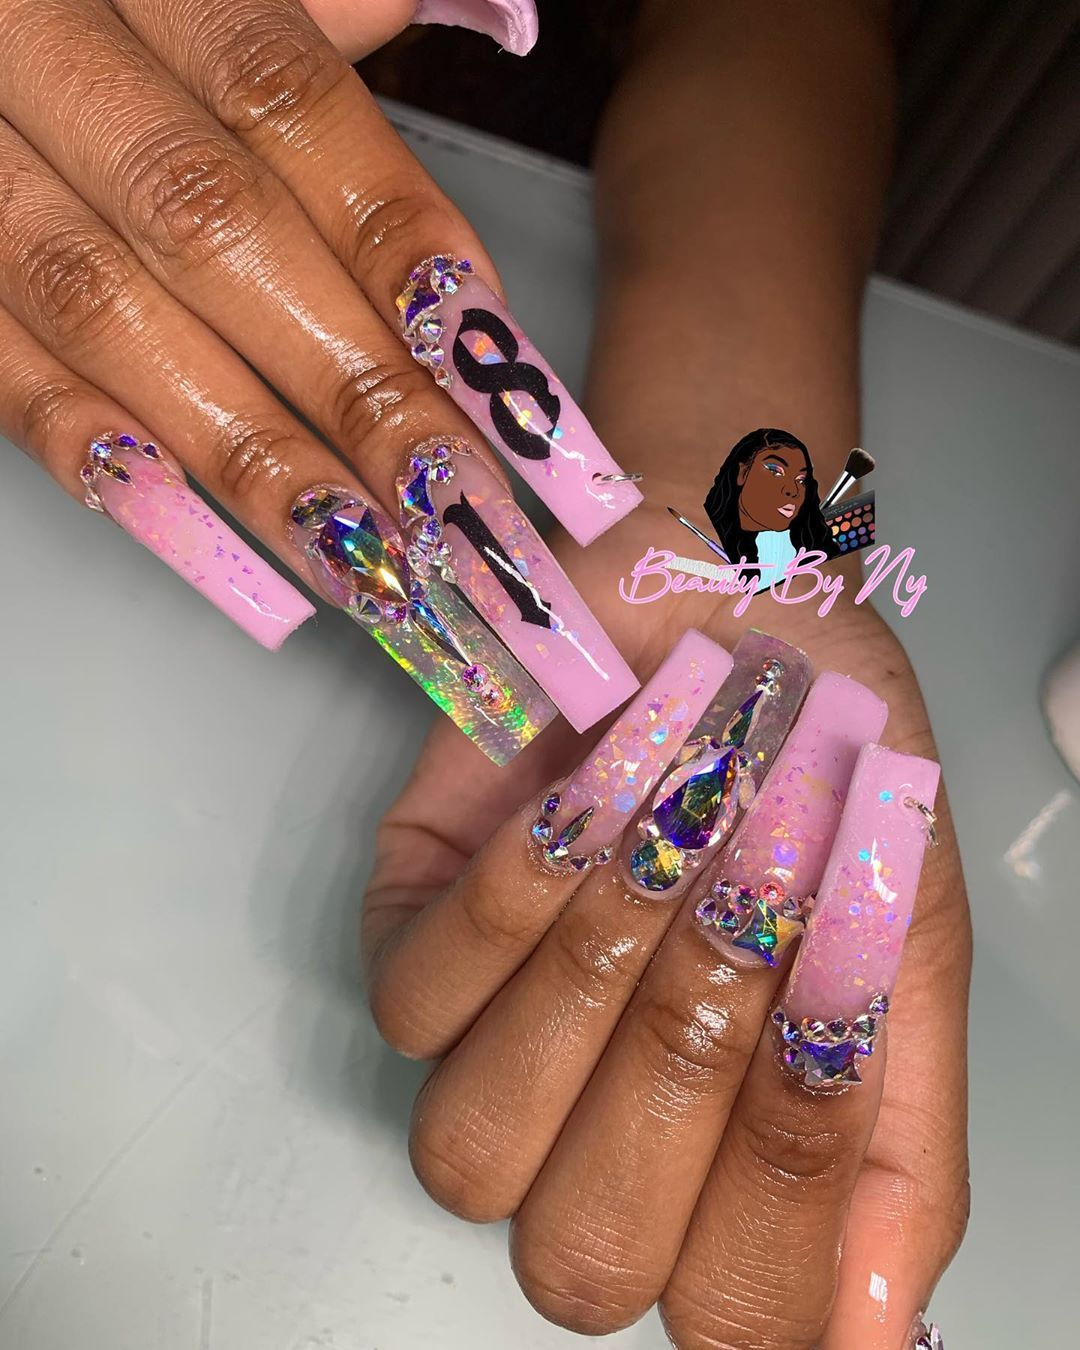 Gvo Negativity 16 Y O On Instagram 18th Birthday Set Used The Glitter Enchantment From Long Acrylic Nails Birthday Nails Birthday Nail Designs